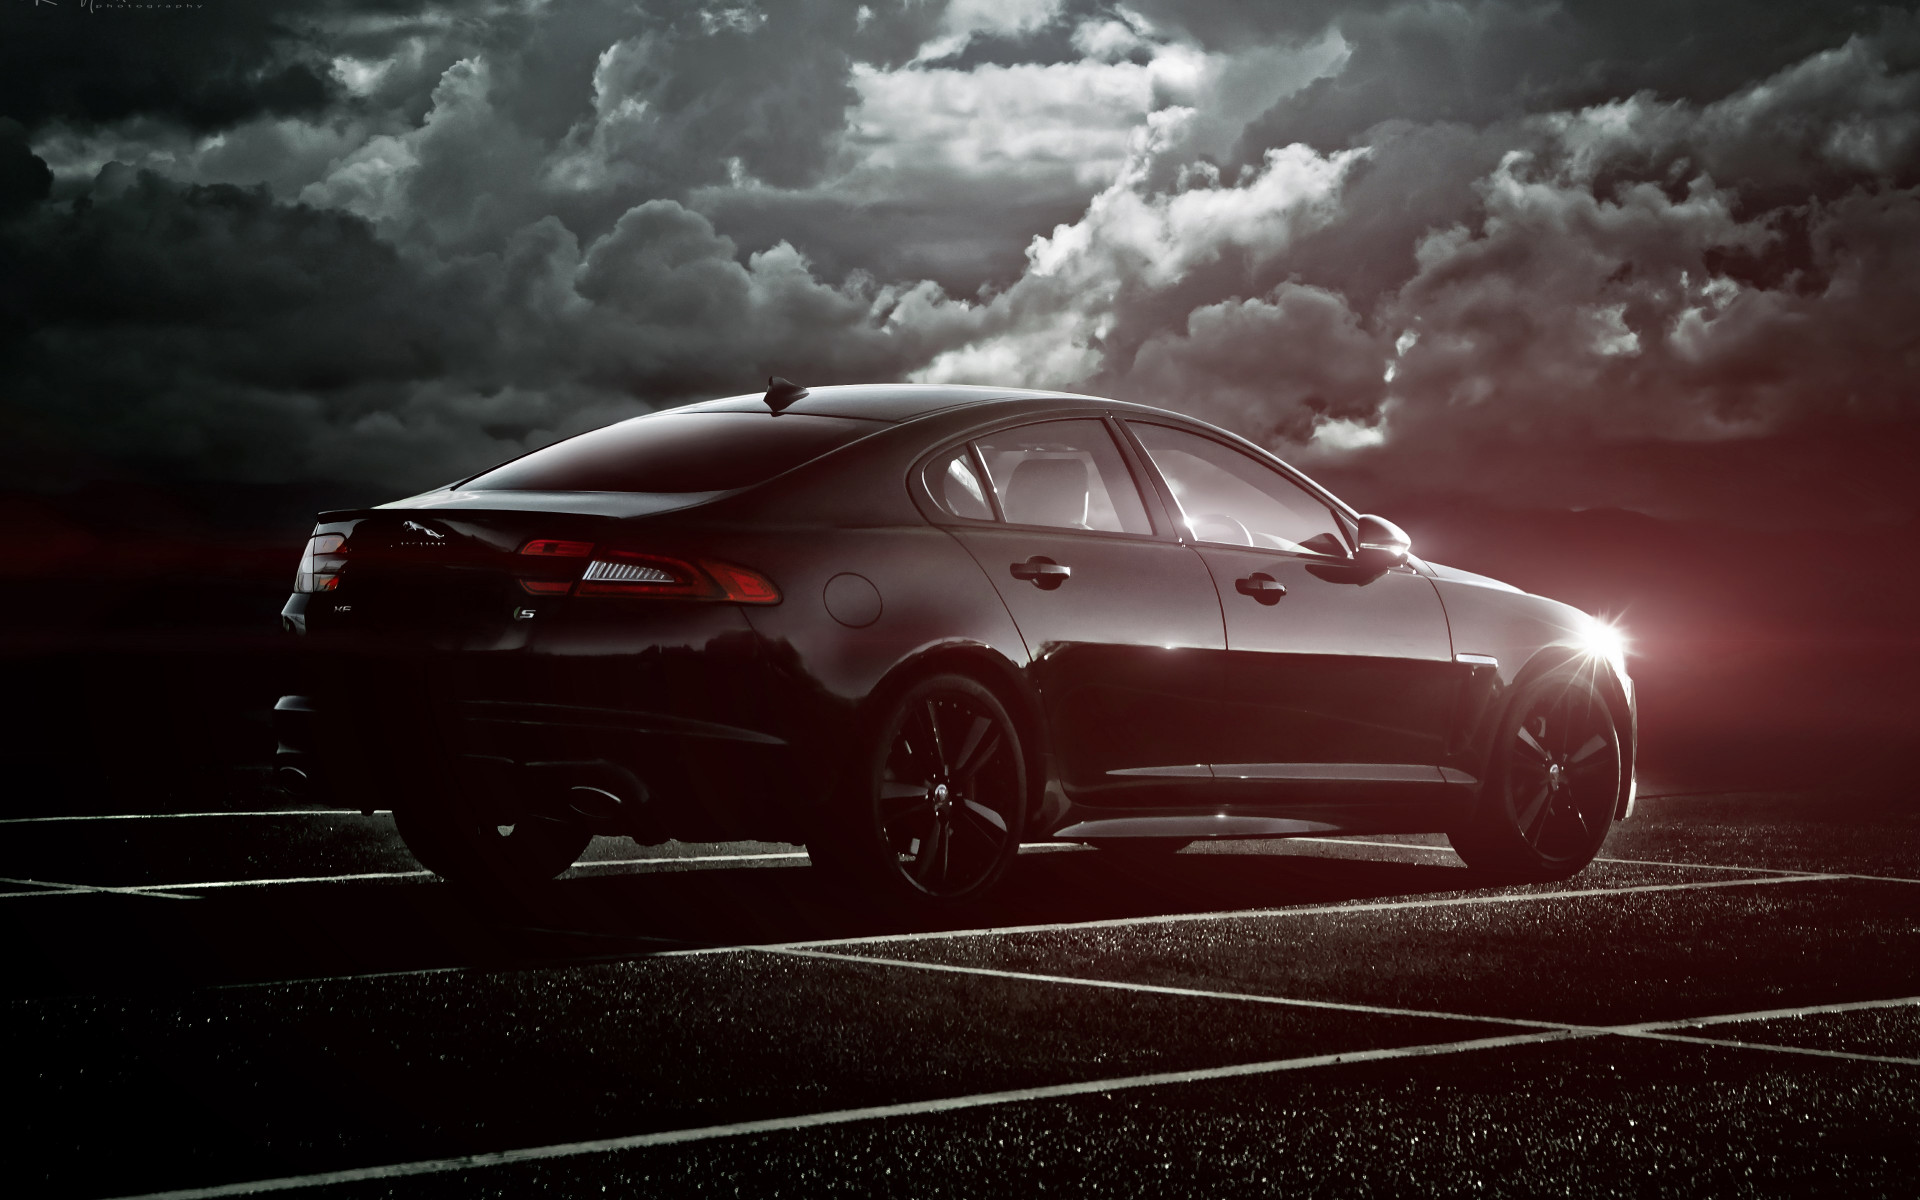 Jaguar XF S wallpaper 1920x1200